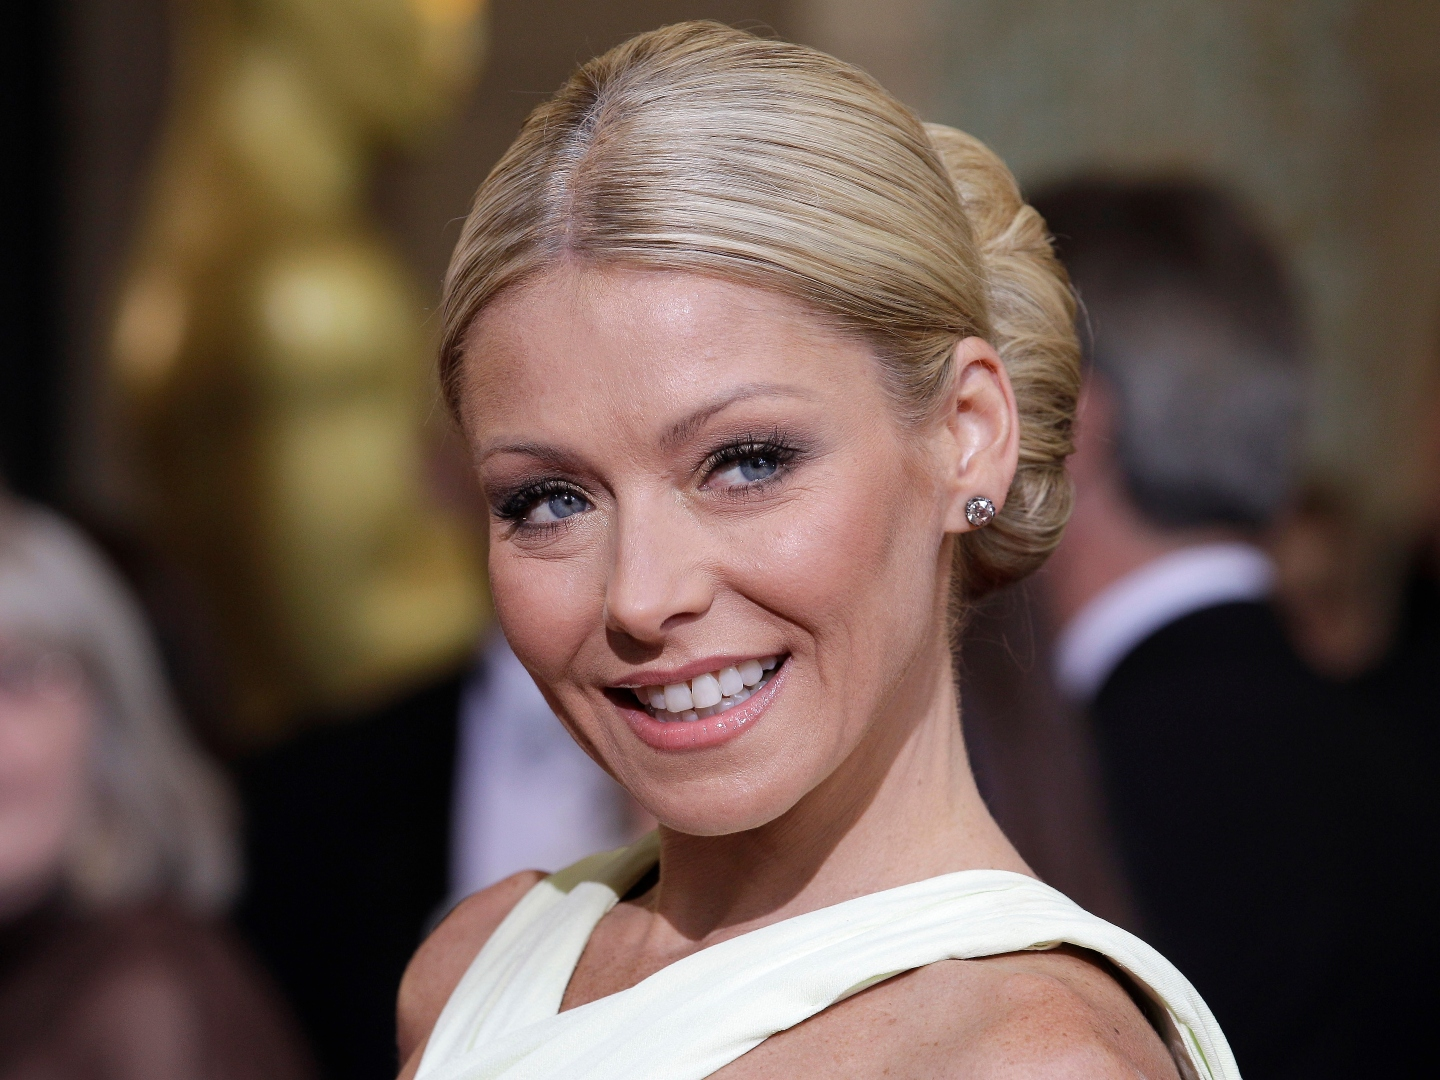 Best Photos Of Kelly Ripa Through The Years 1973 To 50th Birthday Sheknows